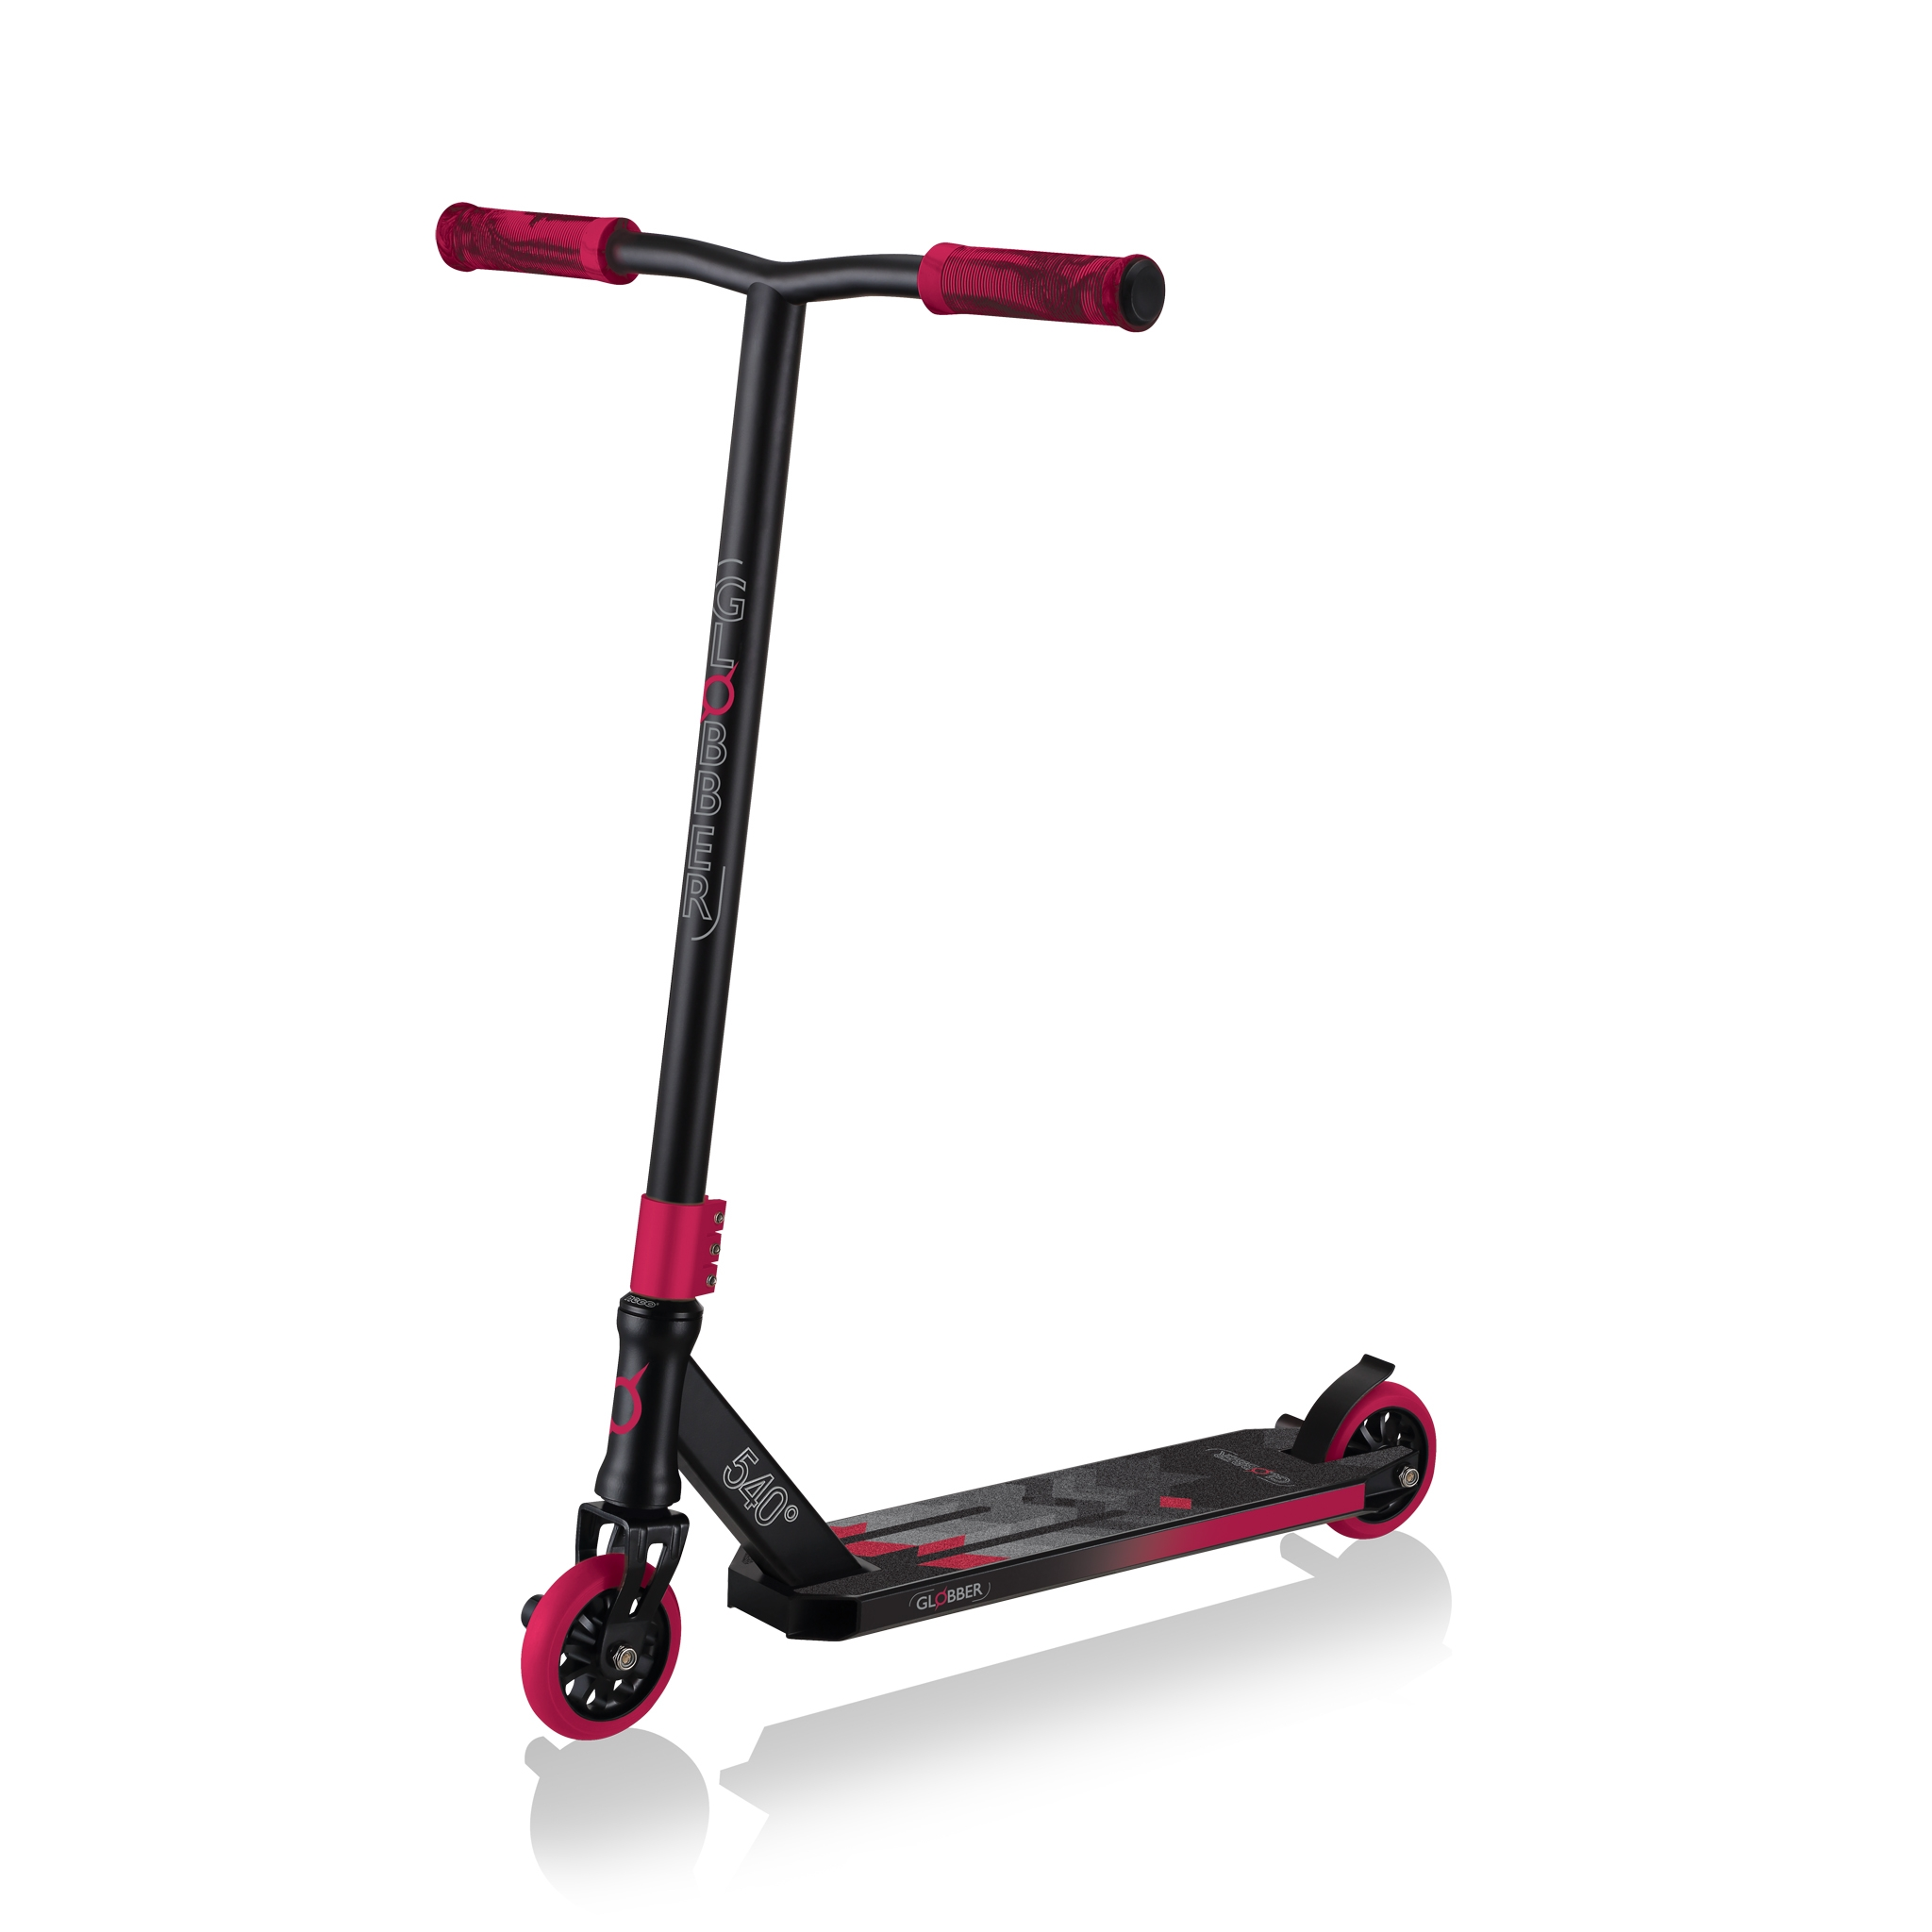 stunt-scooter-with-100mm-wheels-Globber-GS540 4